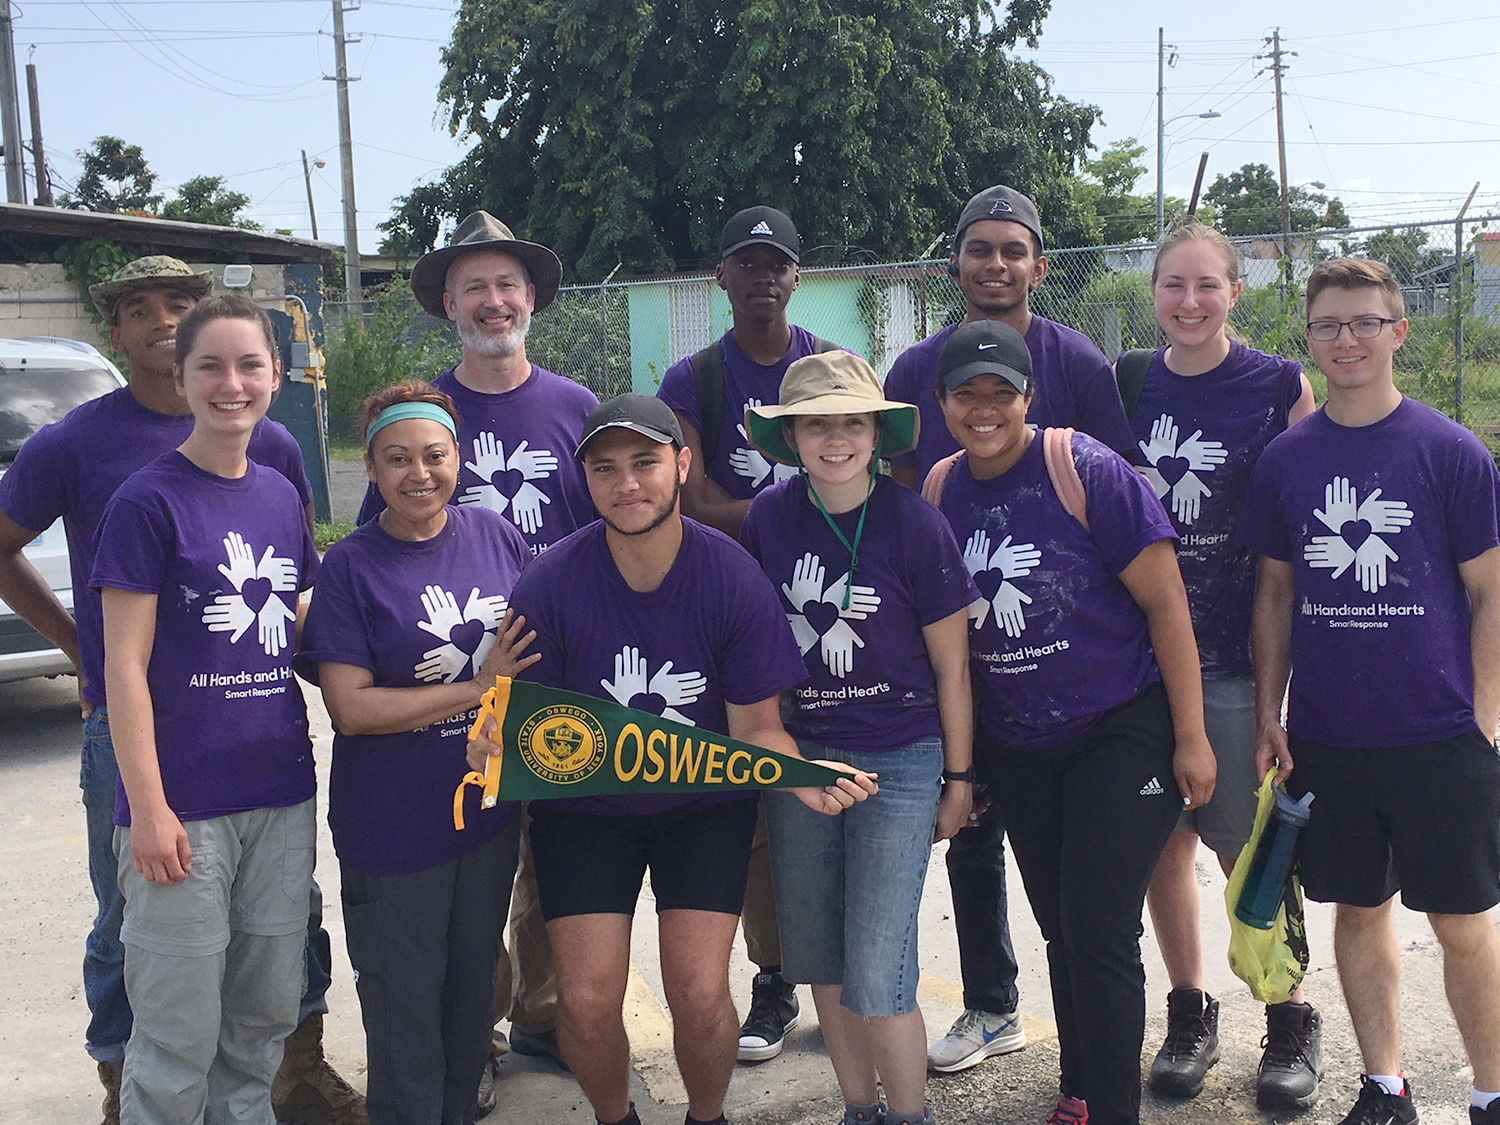 Oswego team members show pride while helping in Puerto Rico